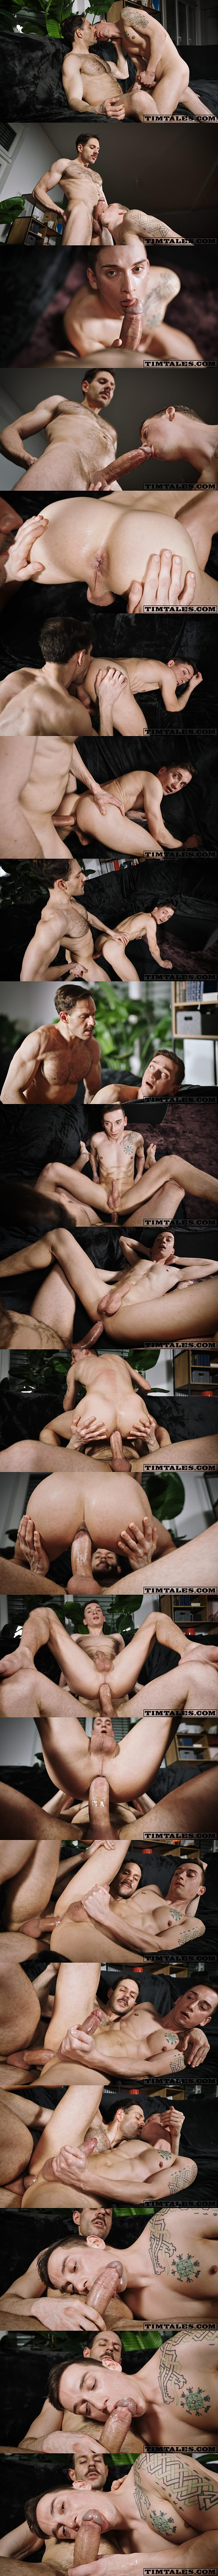 Thick-cocked Brazilian power top Mario Galeno barebacks German twink bottom Michl Amundson in different positions until he fucks the cum out of Michl at Timtales 01